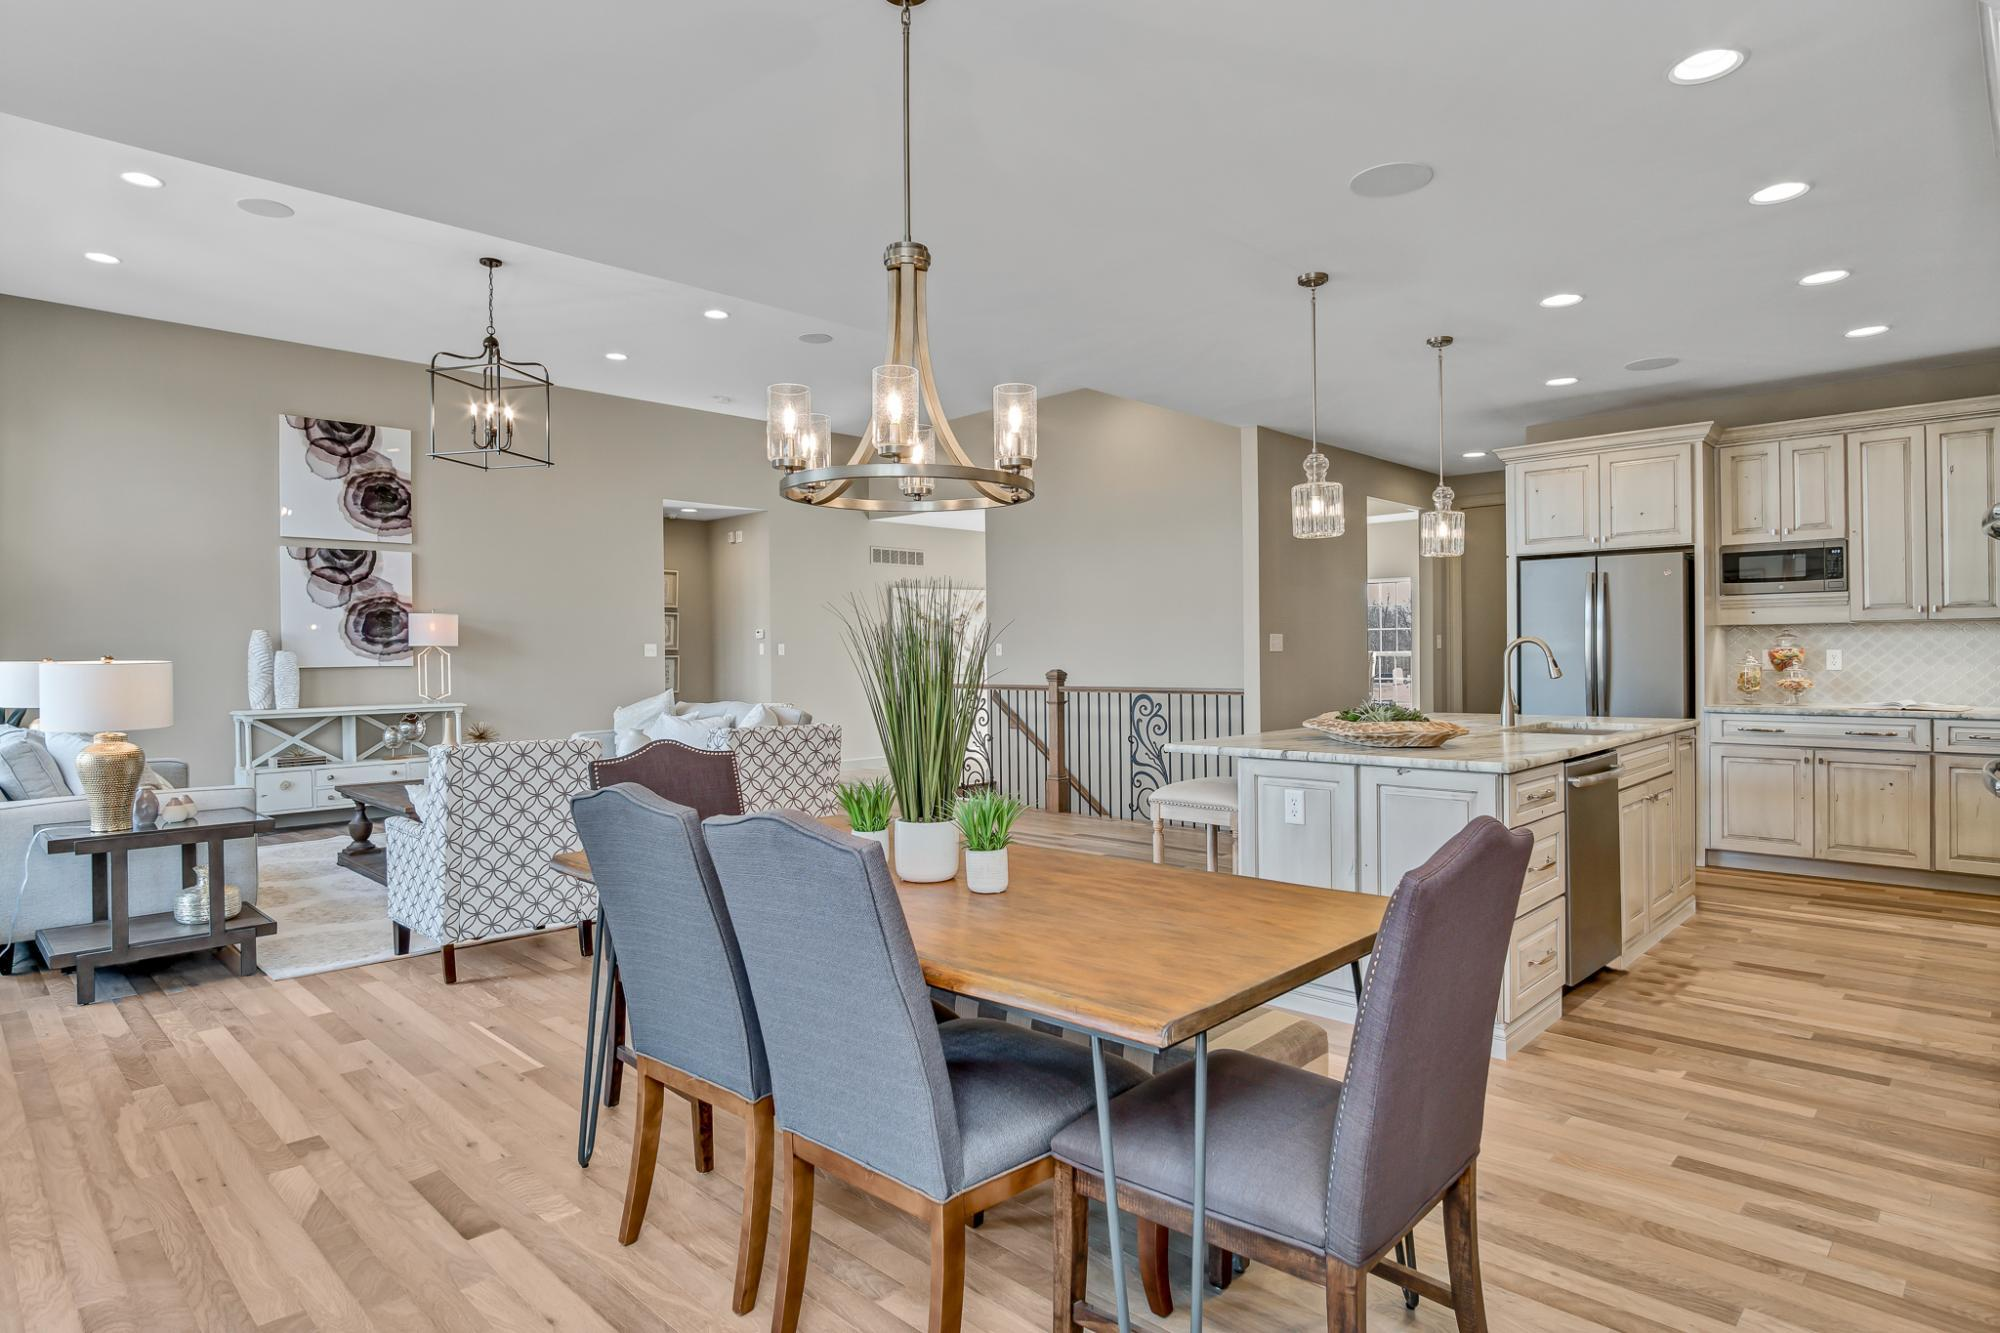 Single Family for Active at Woodside - Woodland 2453 August Grove Court Wildwood, Missouri 63011 United States